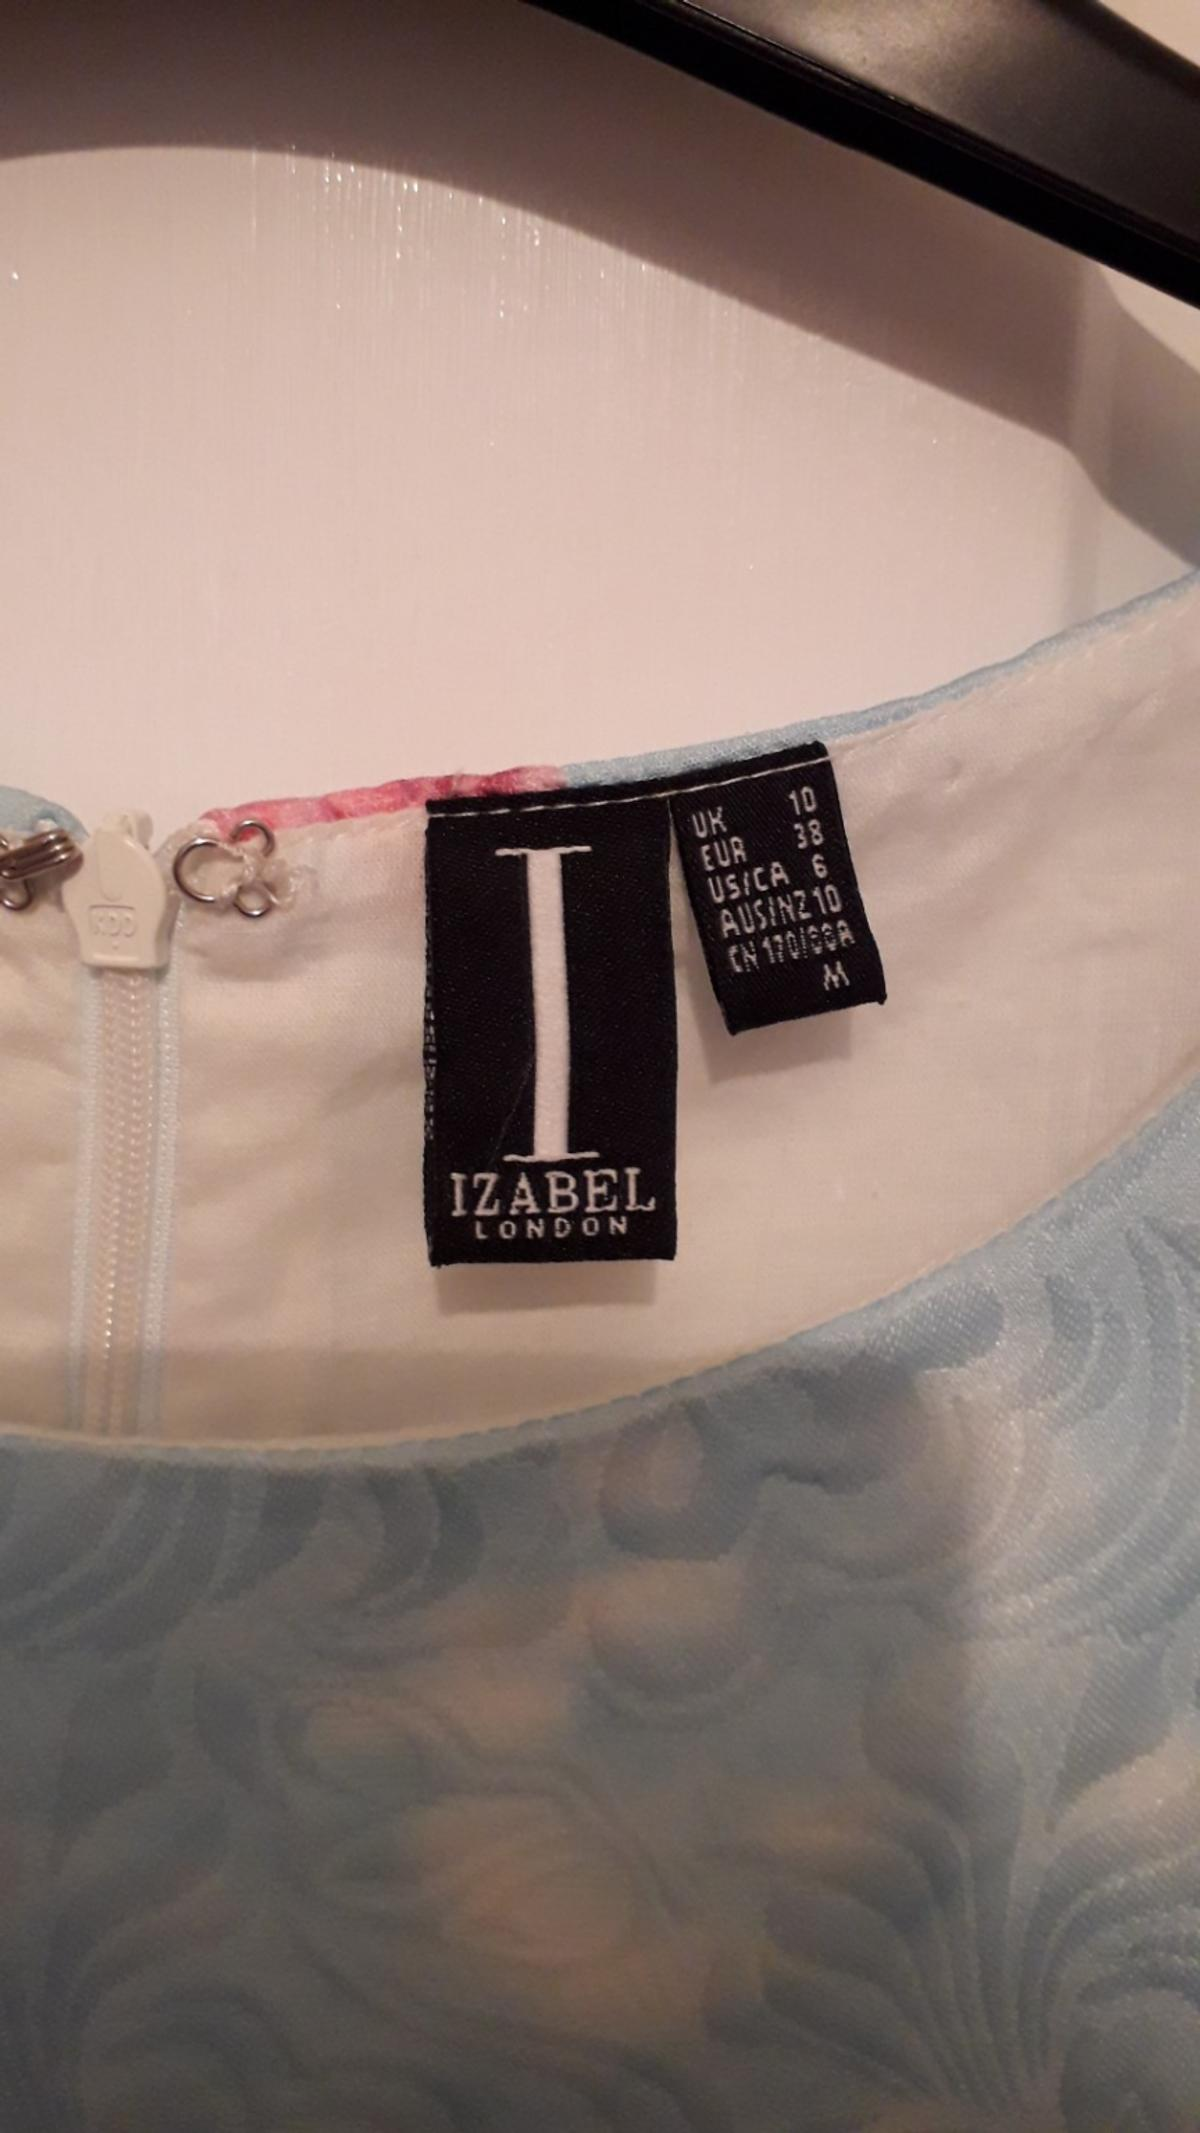 unworn but no tags excellent condition safe collection only